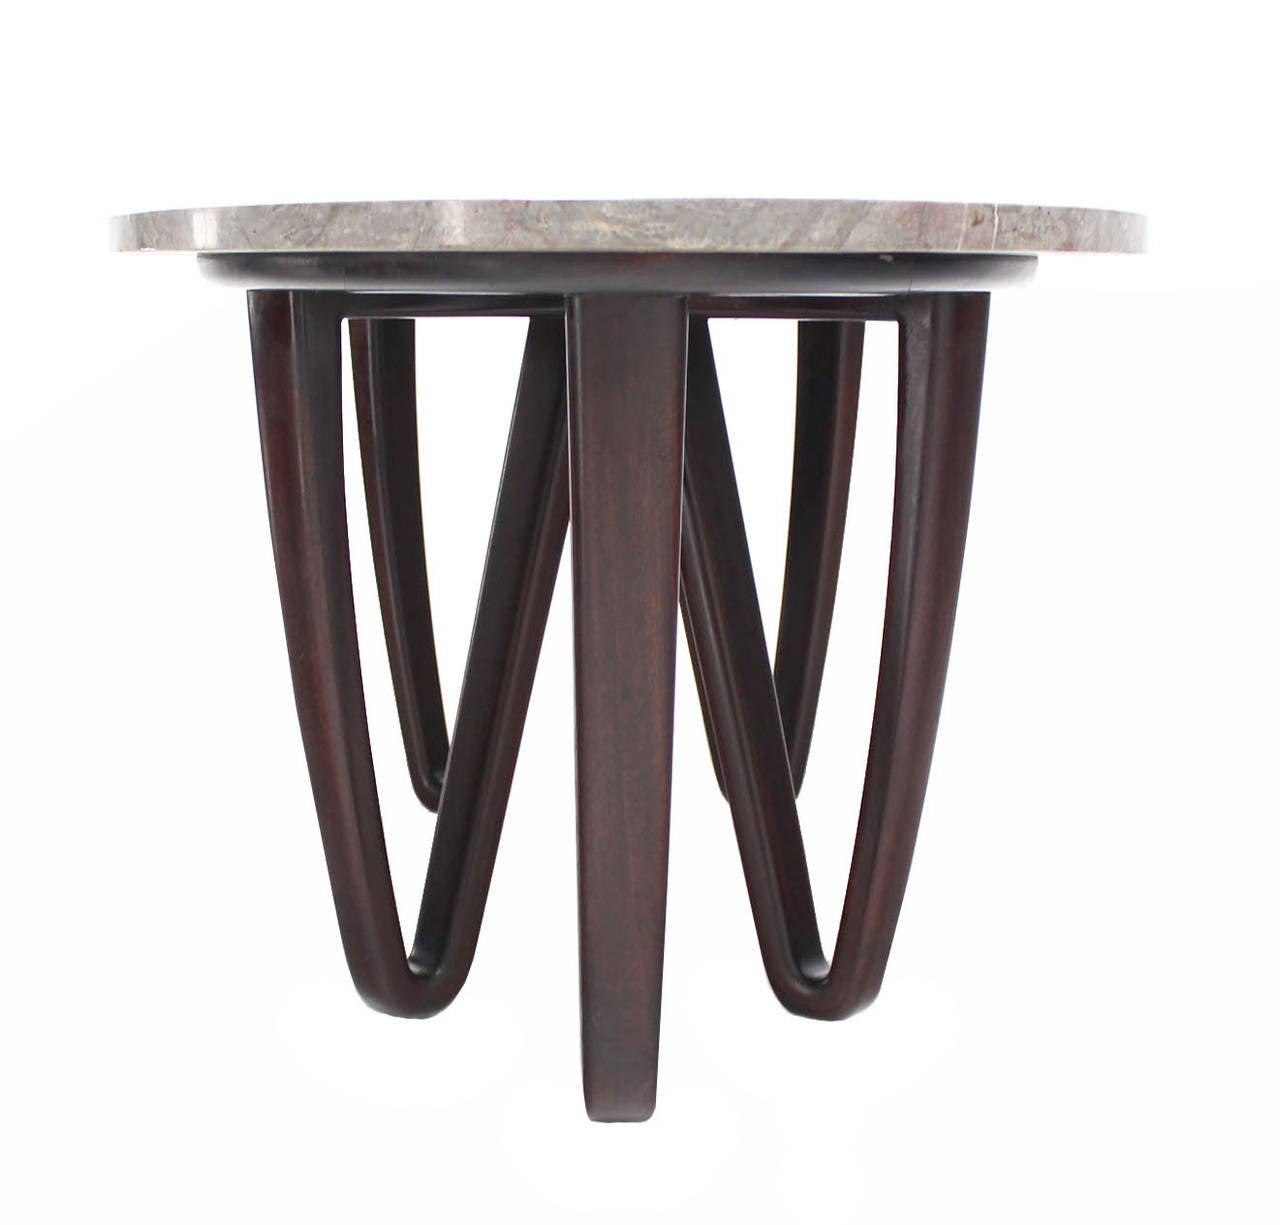 Modern 24 Carat Gold Oval Marble Coffee Table: Oval Marble-Top Coffee Table On Wooden Hair Pin Legs At